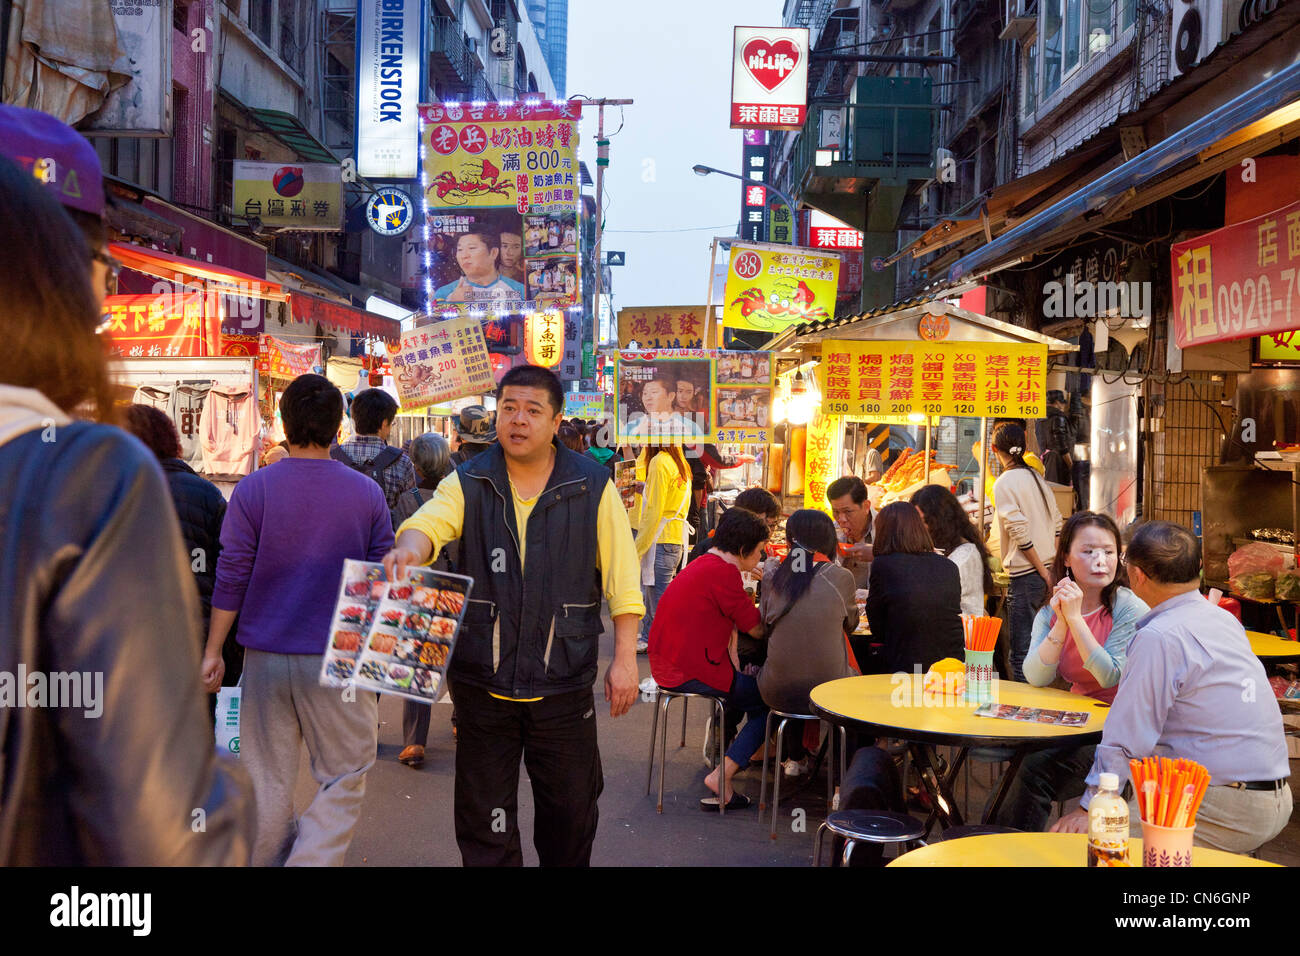 Man touting for restaurant business in Keelung (Jilong) Temple Plaza Night Market, Miaokou Yeshi, Keelung Taiwan. - Stock Image